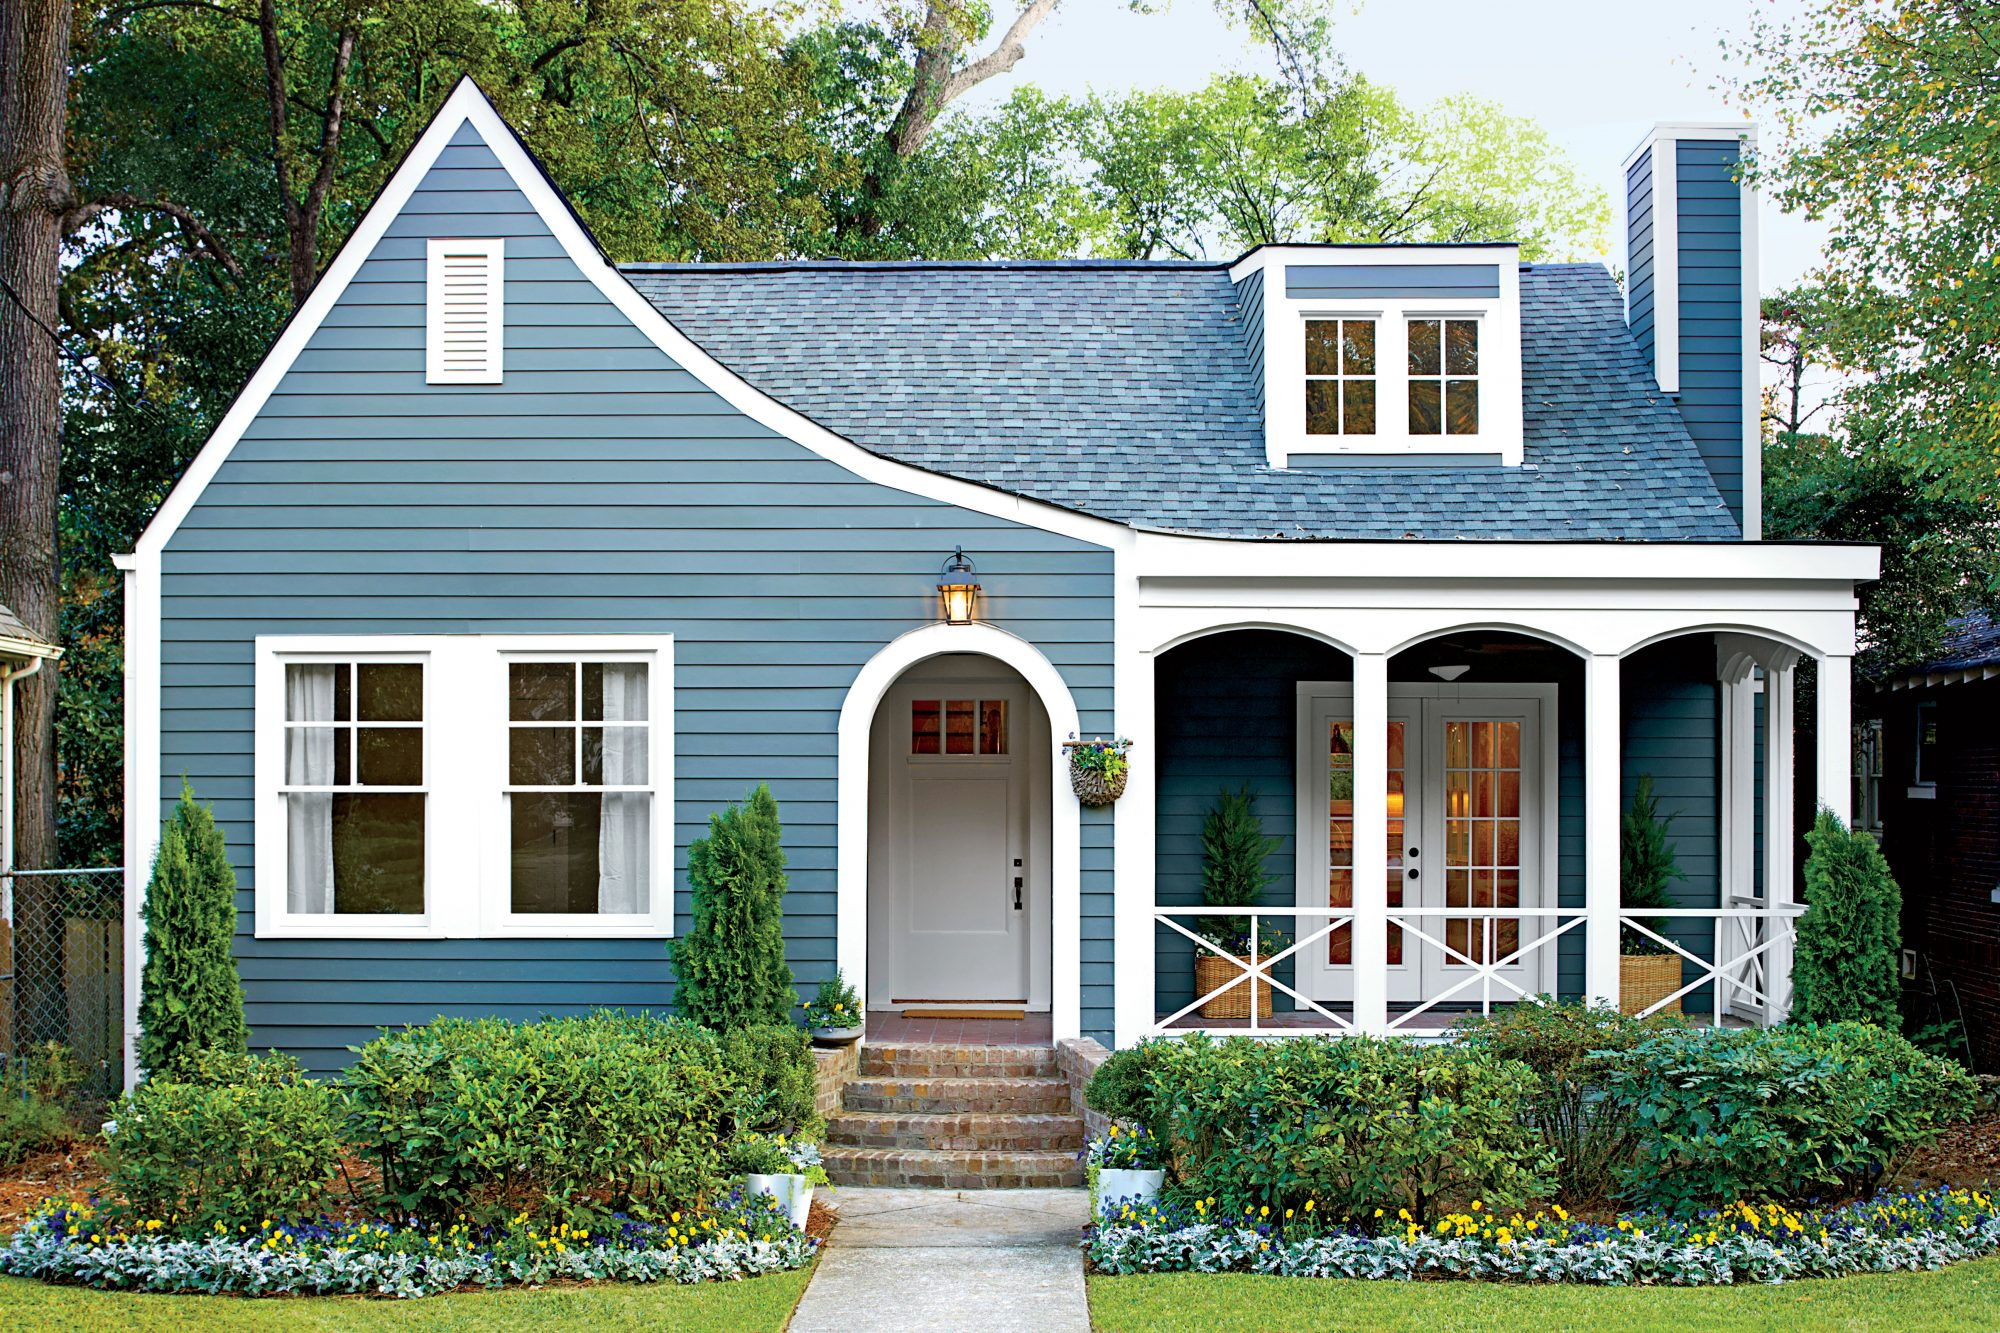 Charming Home Exteriors on exterior fireplace designs, exterior brick house designs, basement ranch home designs, exterior home house design, interior ranch home designs, exterior bungalow designs, living room ranch home designs, modern ranch home designs, remodeled ranch home designs, front ranch home designs, waterfront ranch home designs, ranch style house designs,